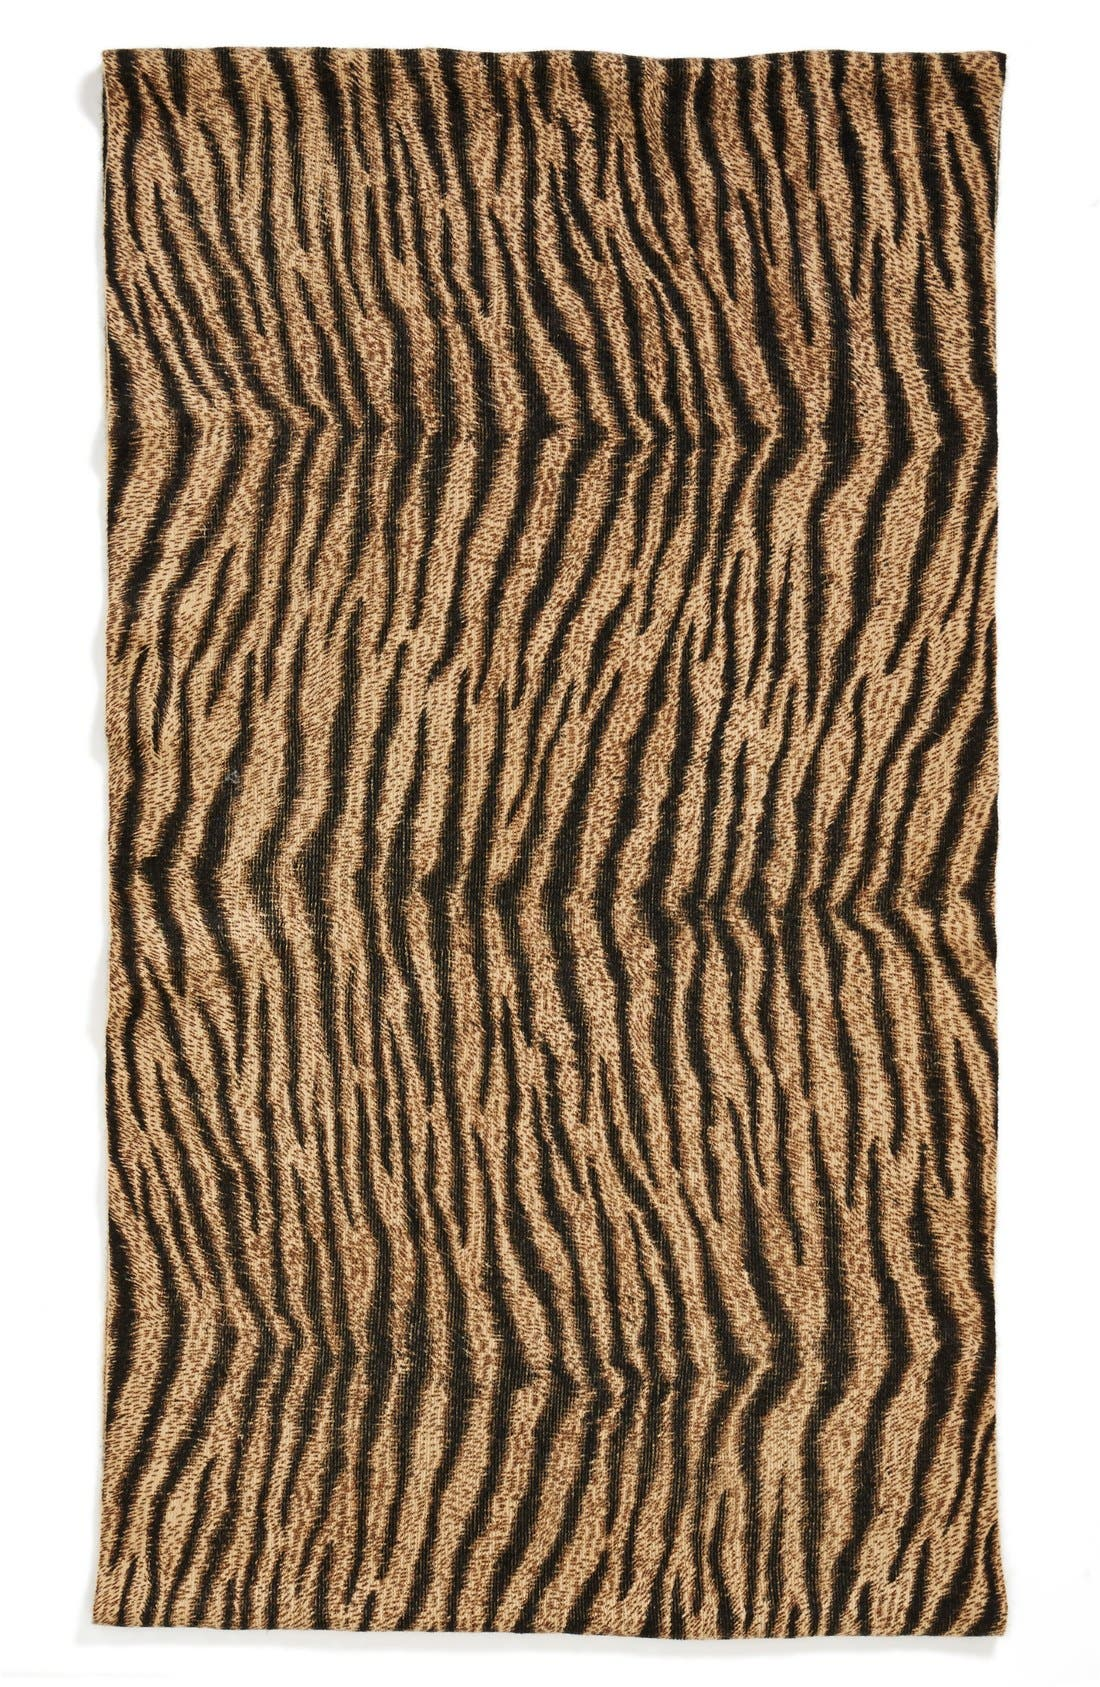 'Beobob' Tiger Print Infinity Scarf,                             Alternate thumbnail 3, color,                             200